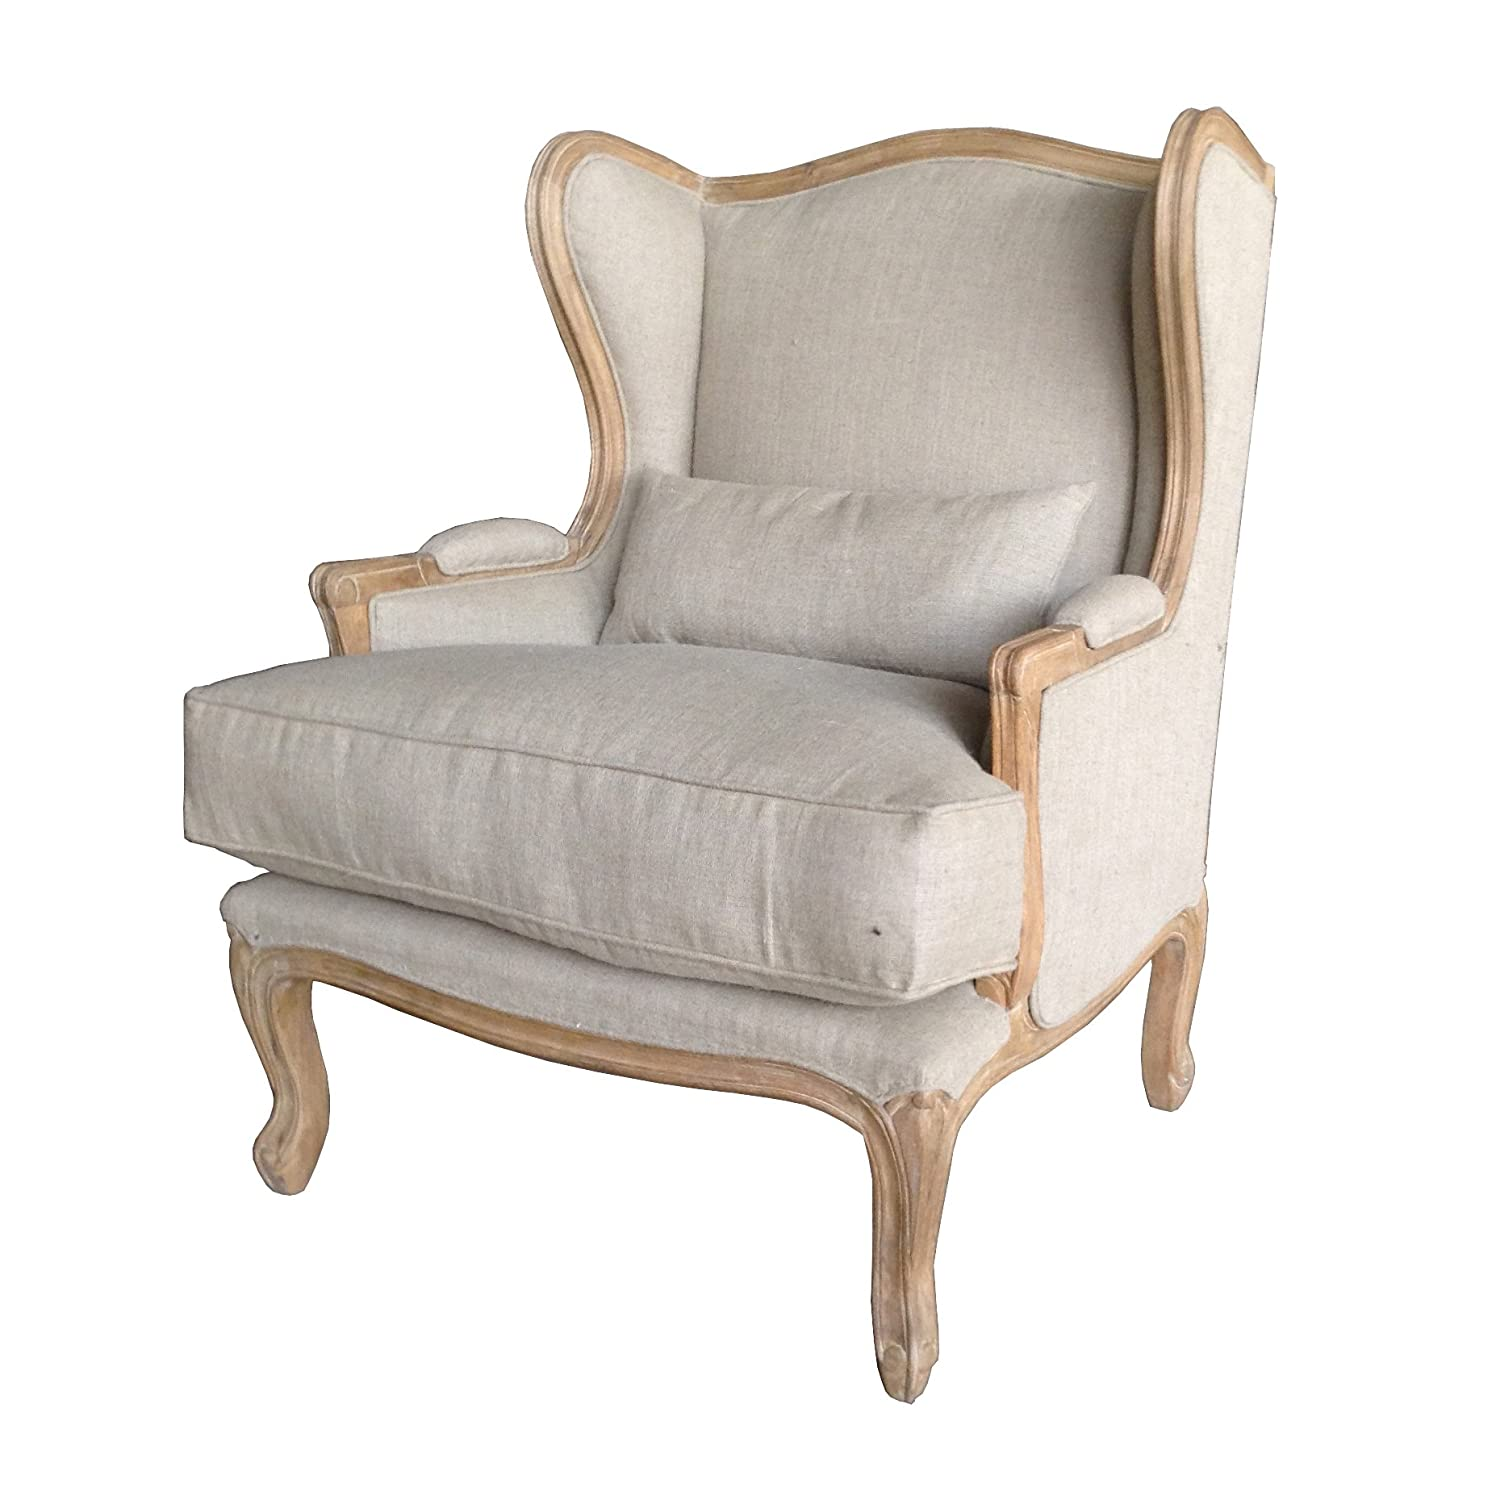 A Beautiful Carved French Style Shabby Chic Small Wing Chair / French  Armchair, Lounge Furniture In Retro Touch Finish. Upholstery In Natural  Linen With ...